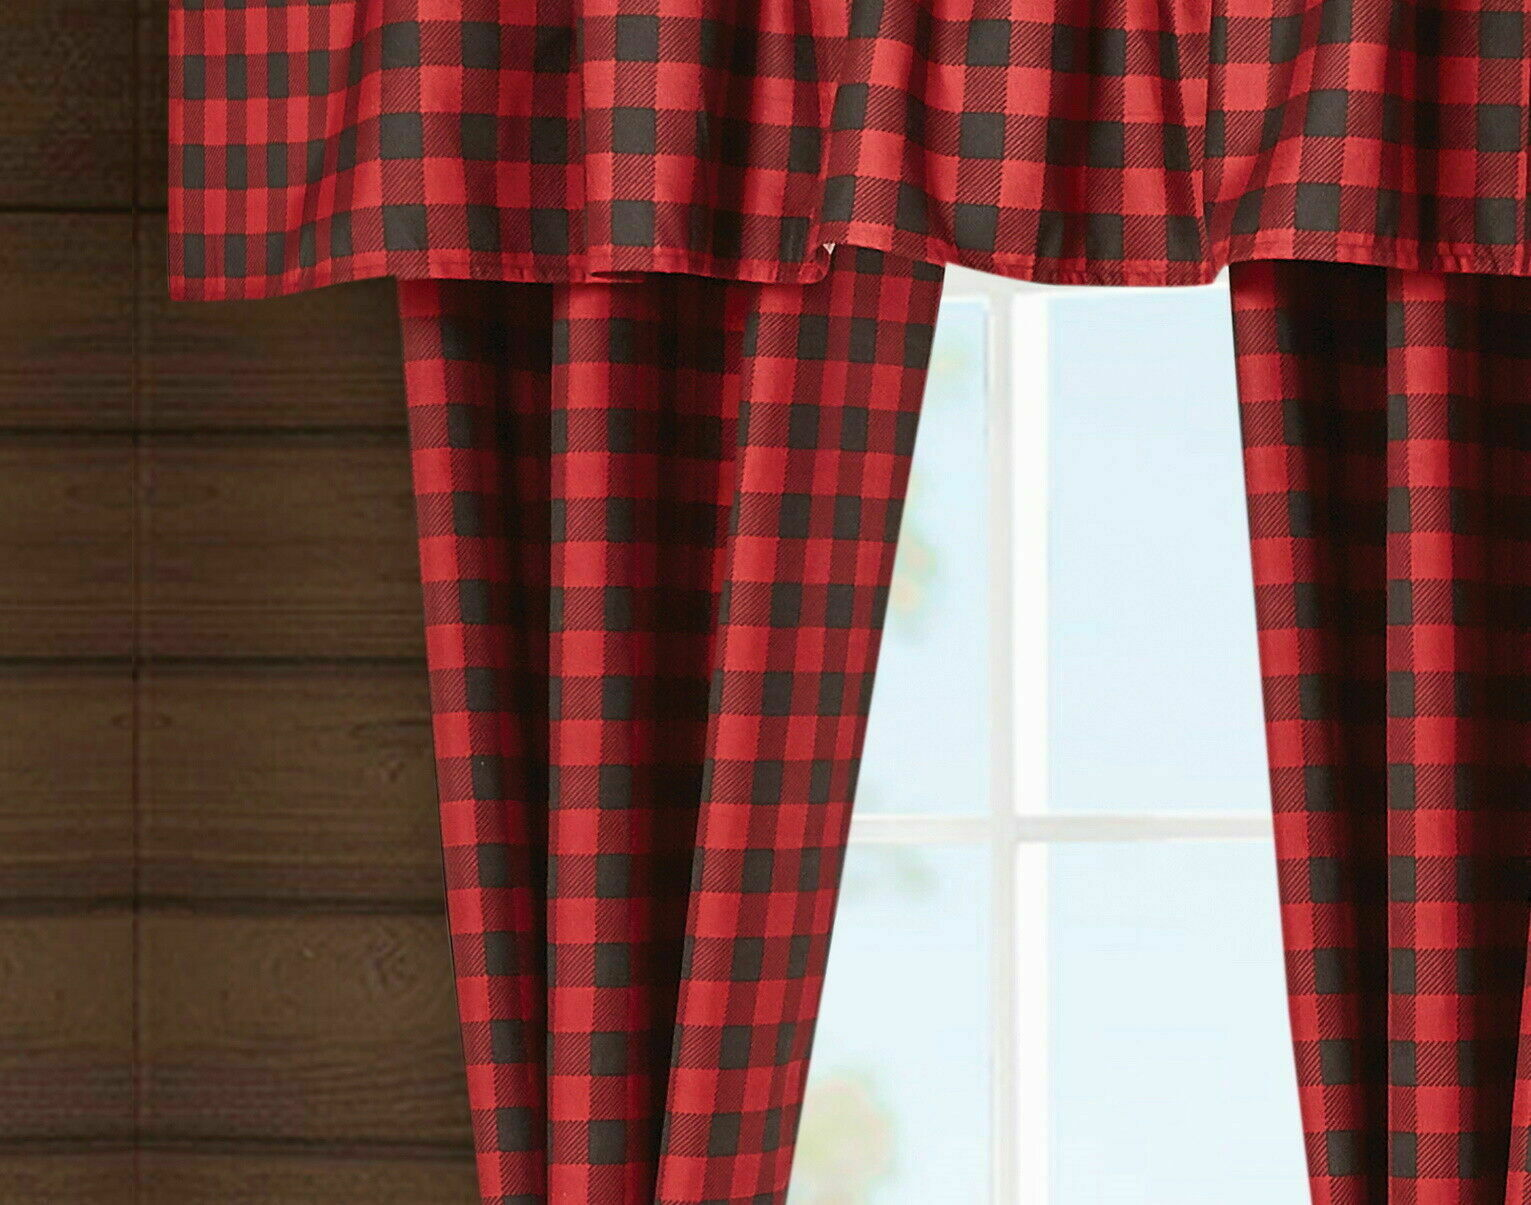 Kitchen Curtain Window Valance French Country Rooster Red Gray Black Check For Sale Online Ebay